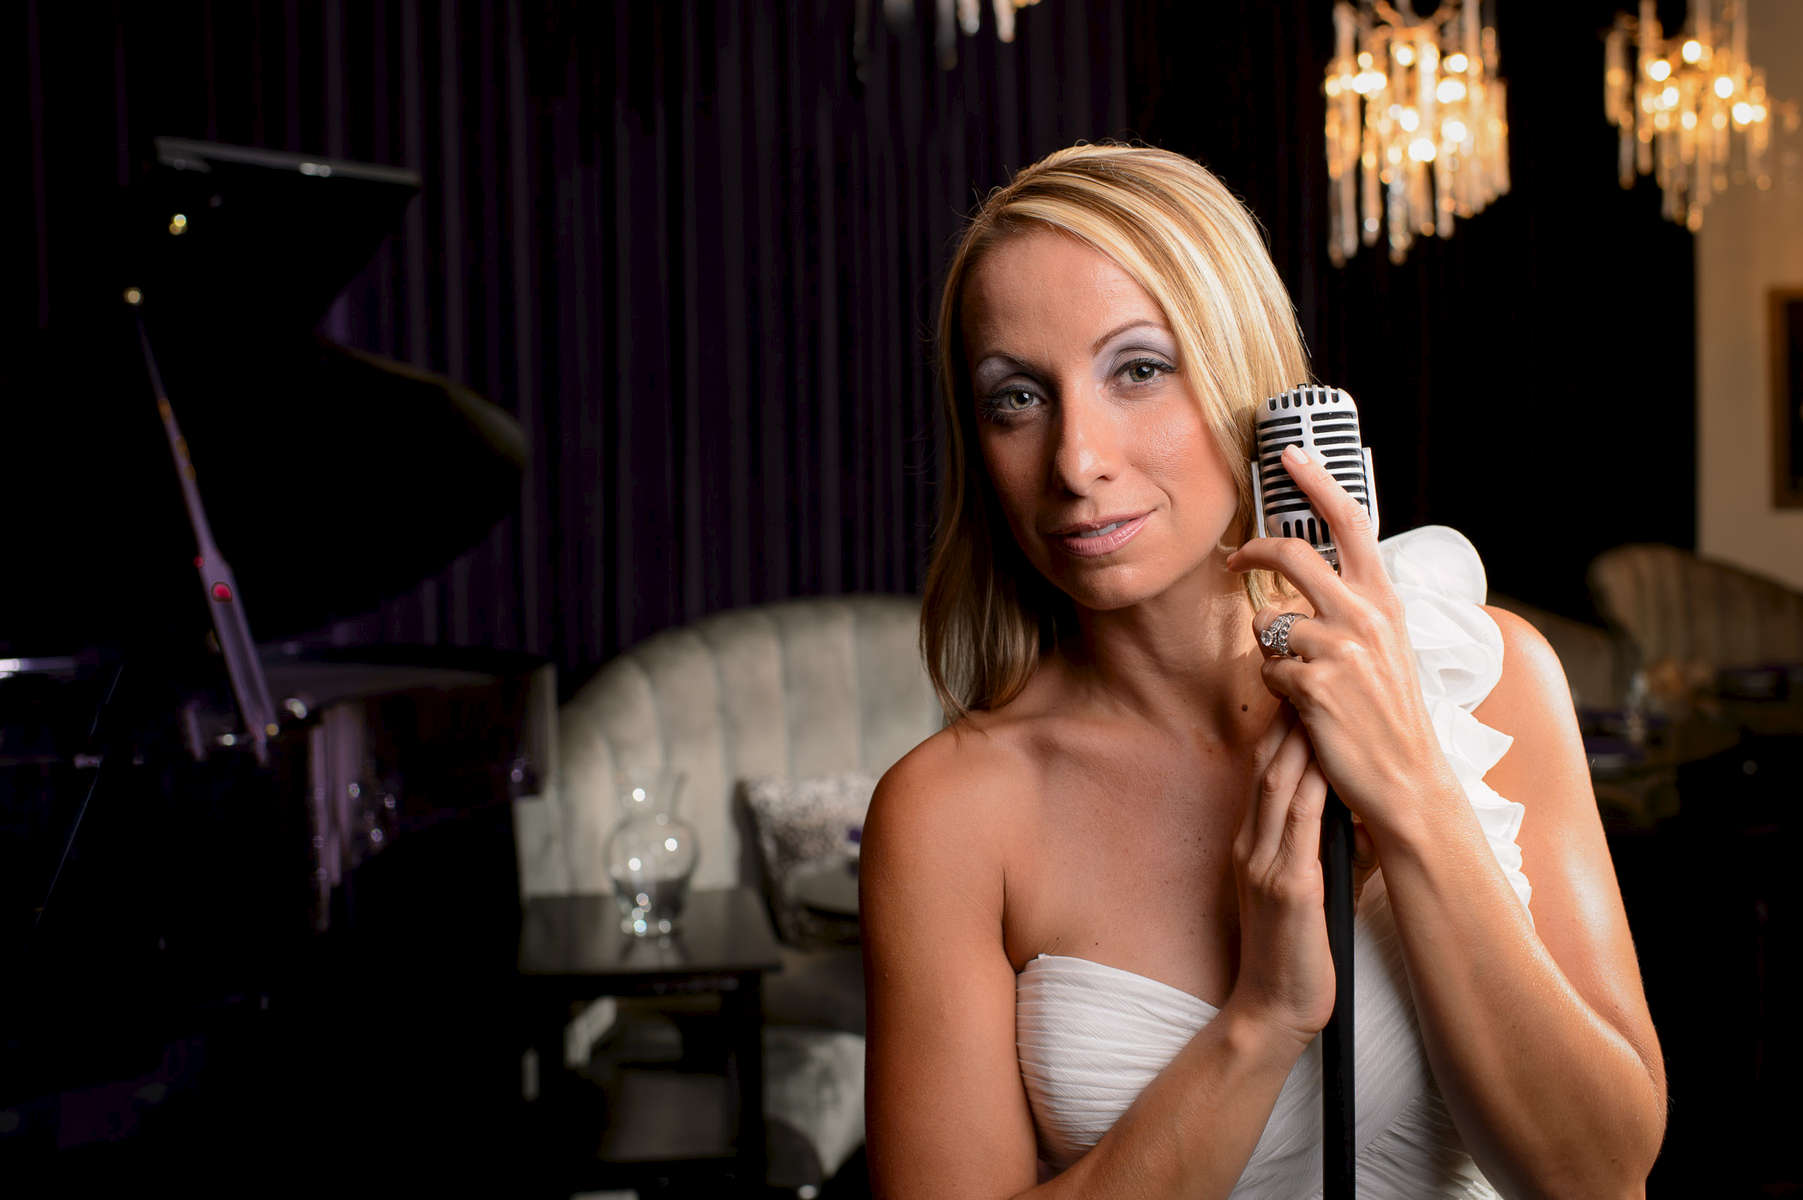 Singer Lorrianna Colozzo holding an old fashioned microphone